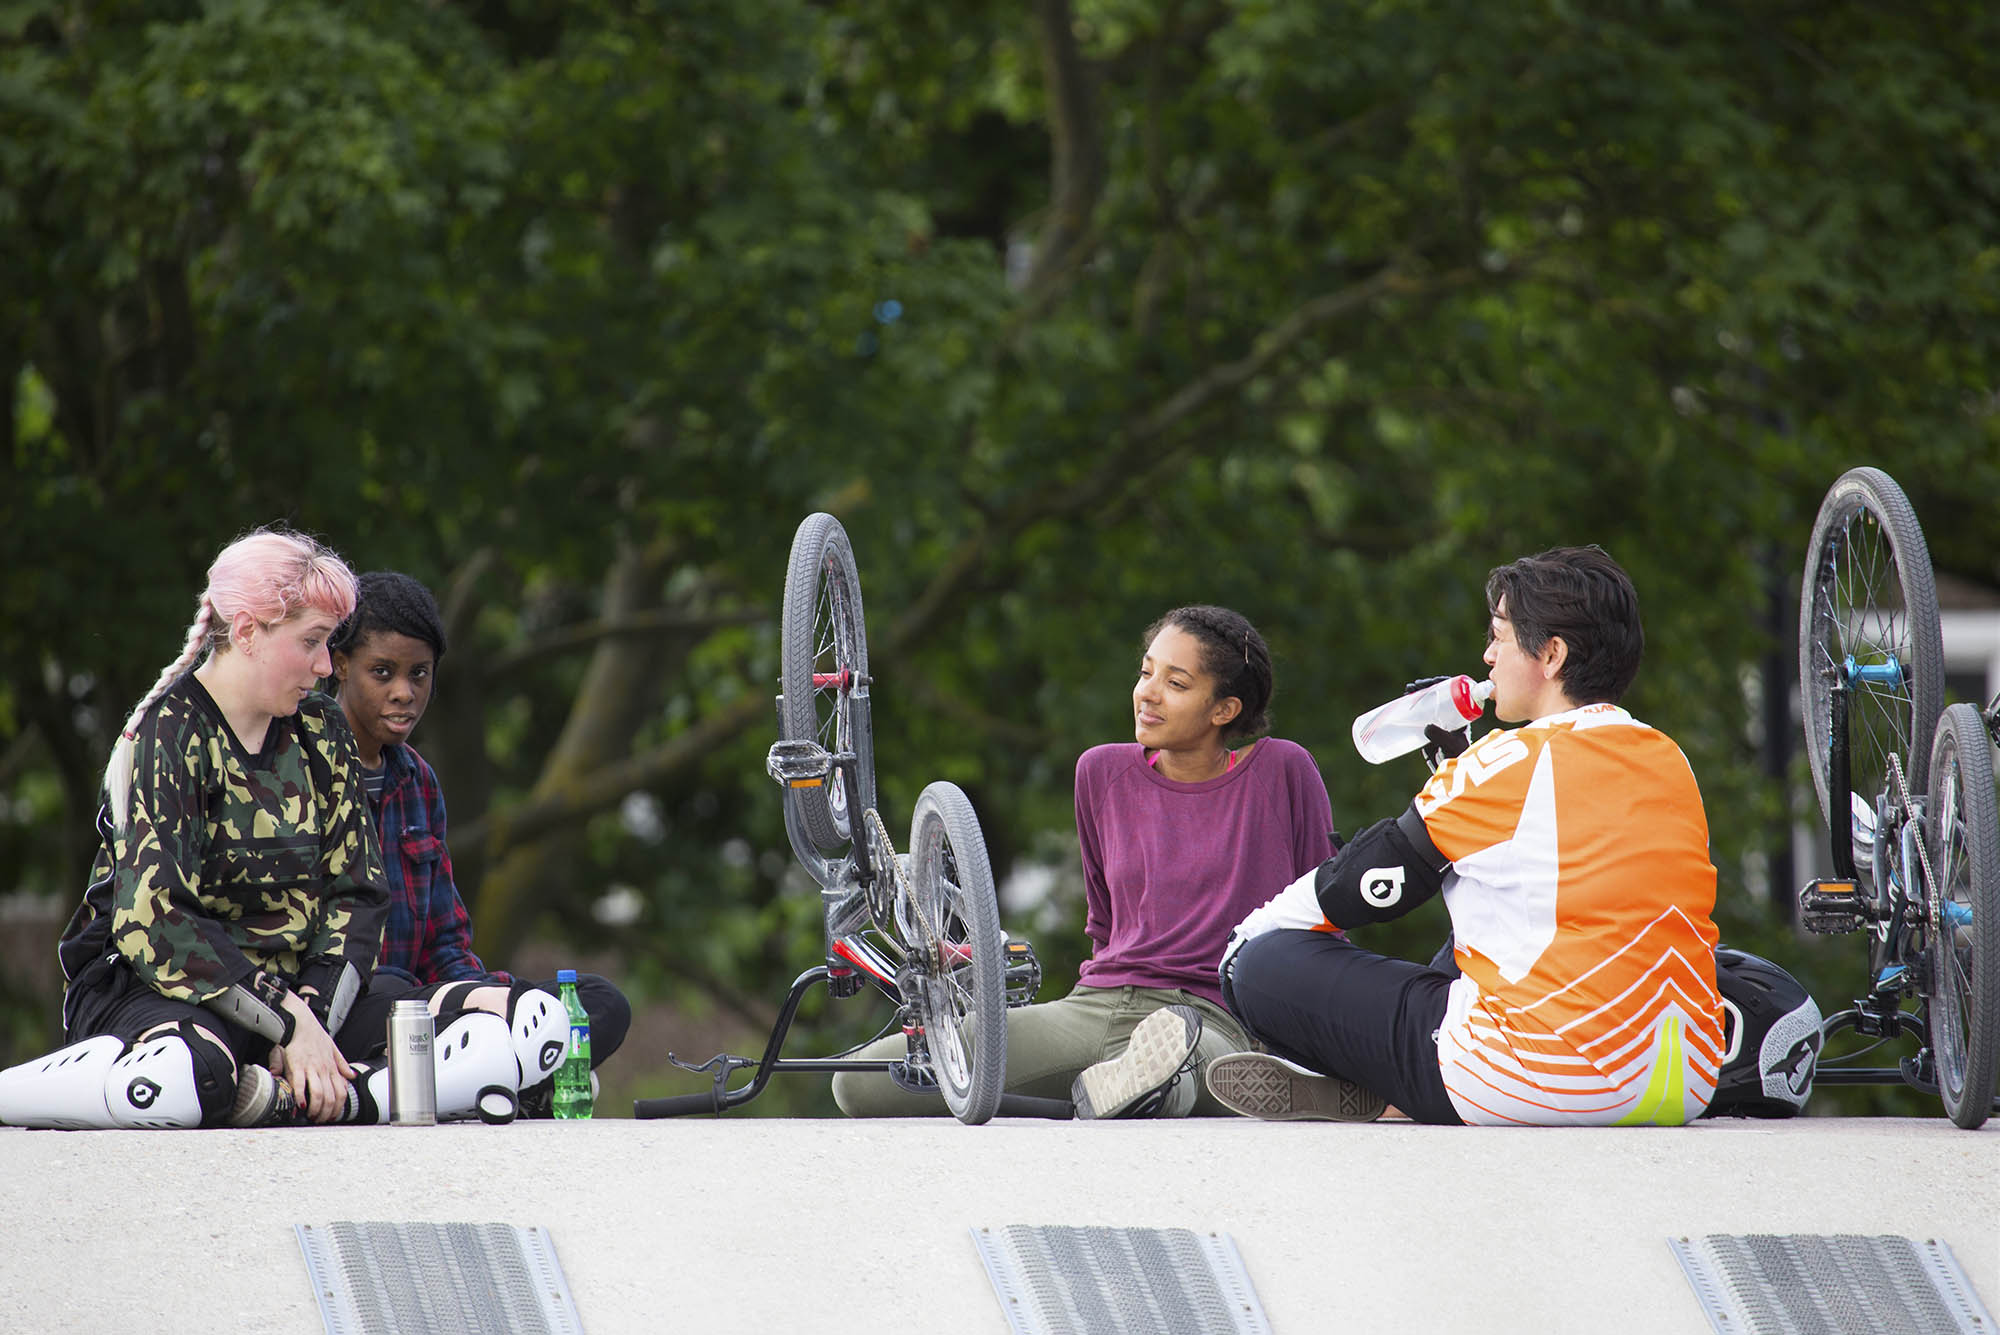 four people sat down and taking a breather during bmx riding